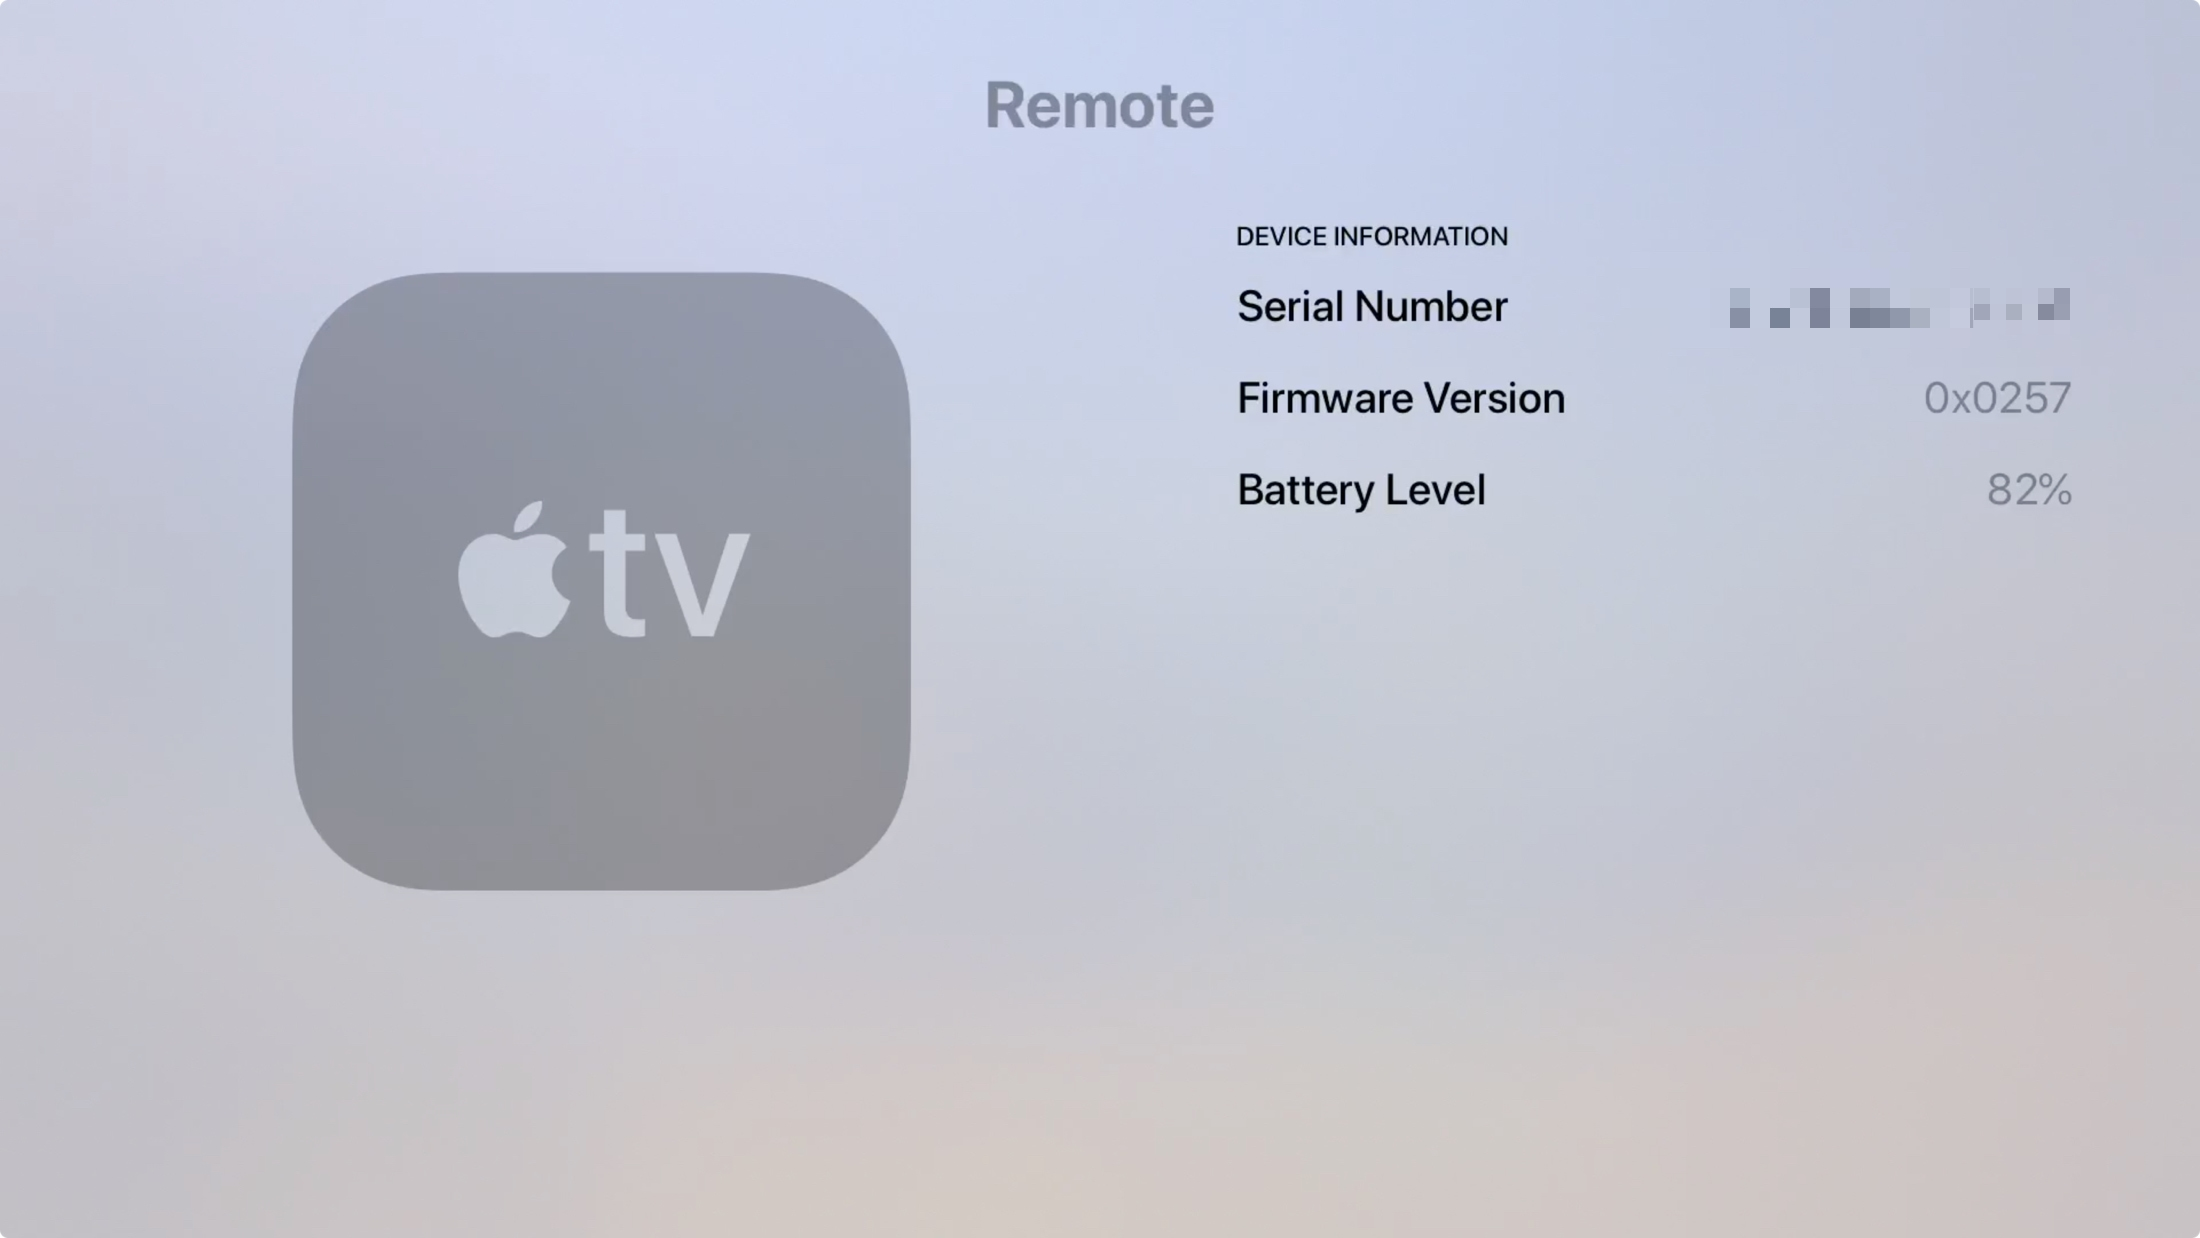 Apple TV Siri Remote Serial Number in Remotes and Devices in Settings